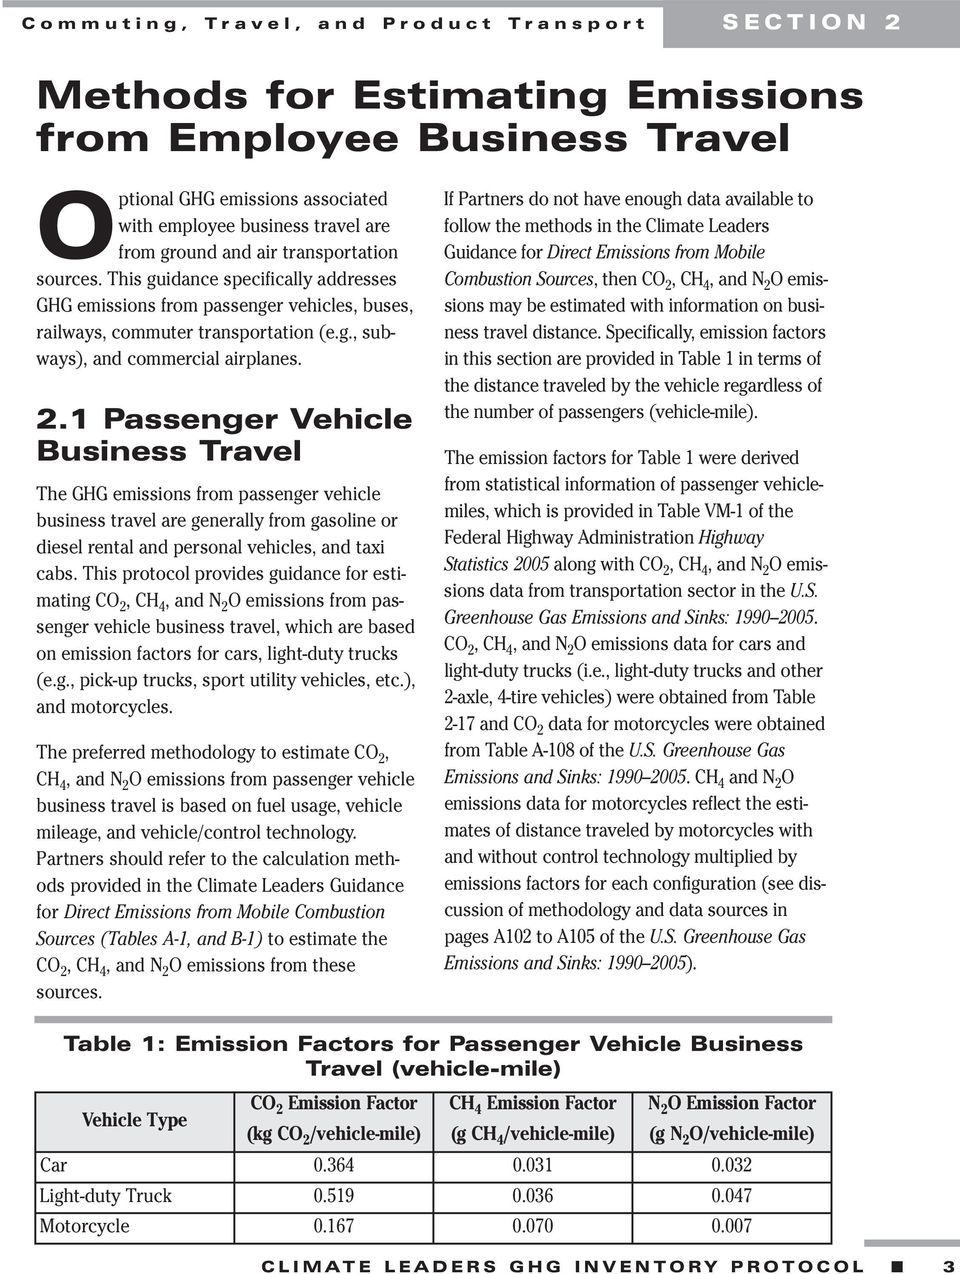 1 Passenger Vehicle Business Travel The GHG emissions from passenger vehicle business travel are generally from gasoline or diesel rental and personal vehicles, and taxi cabs.